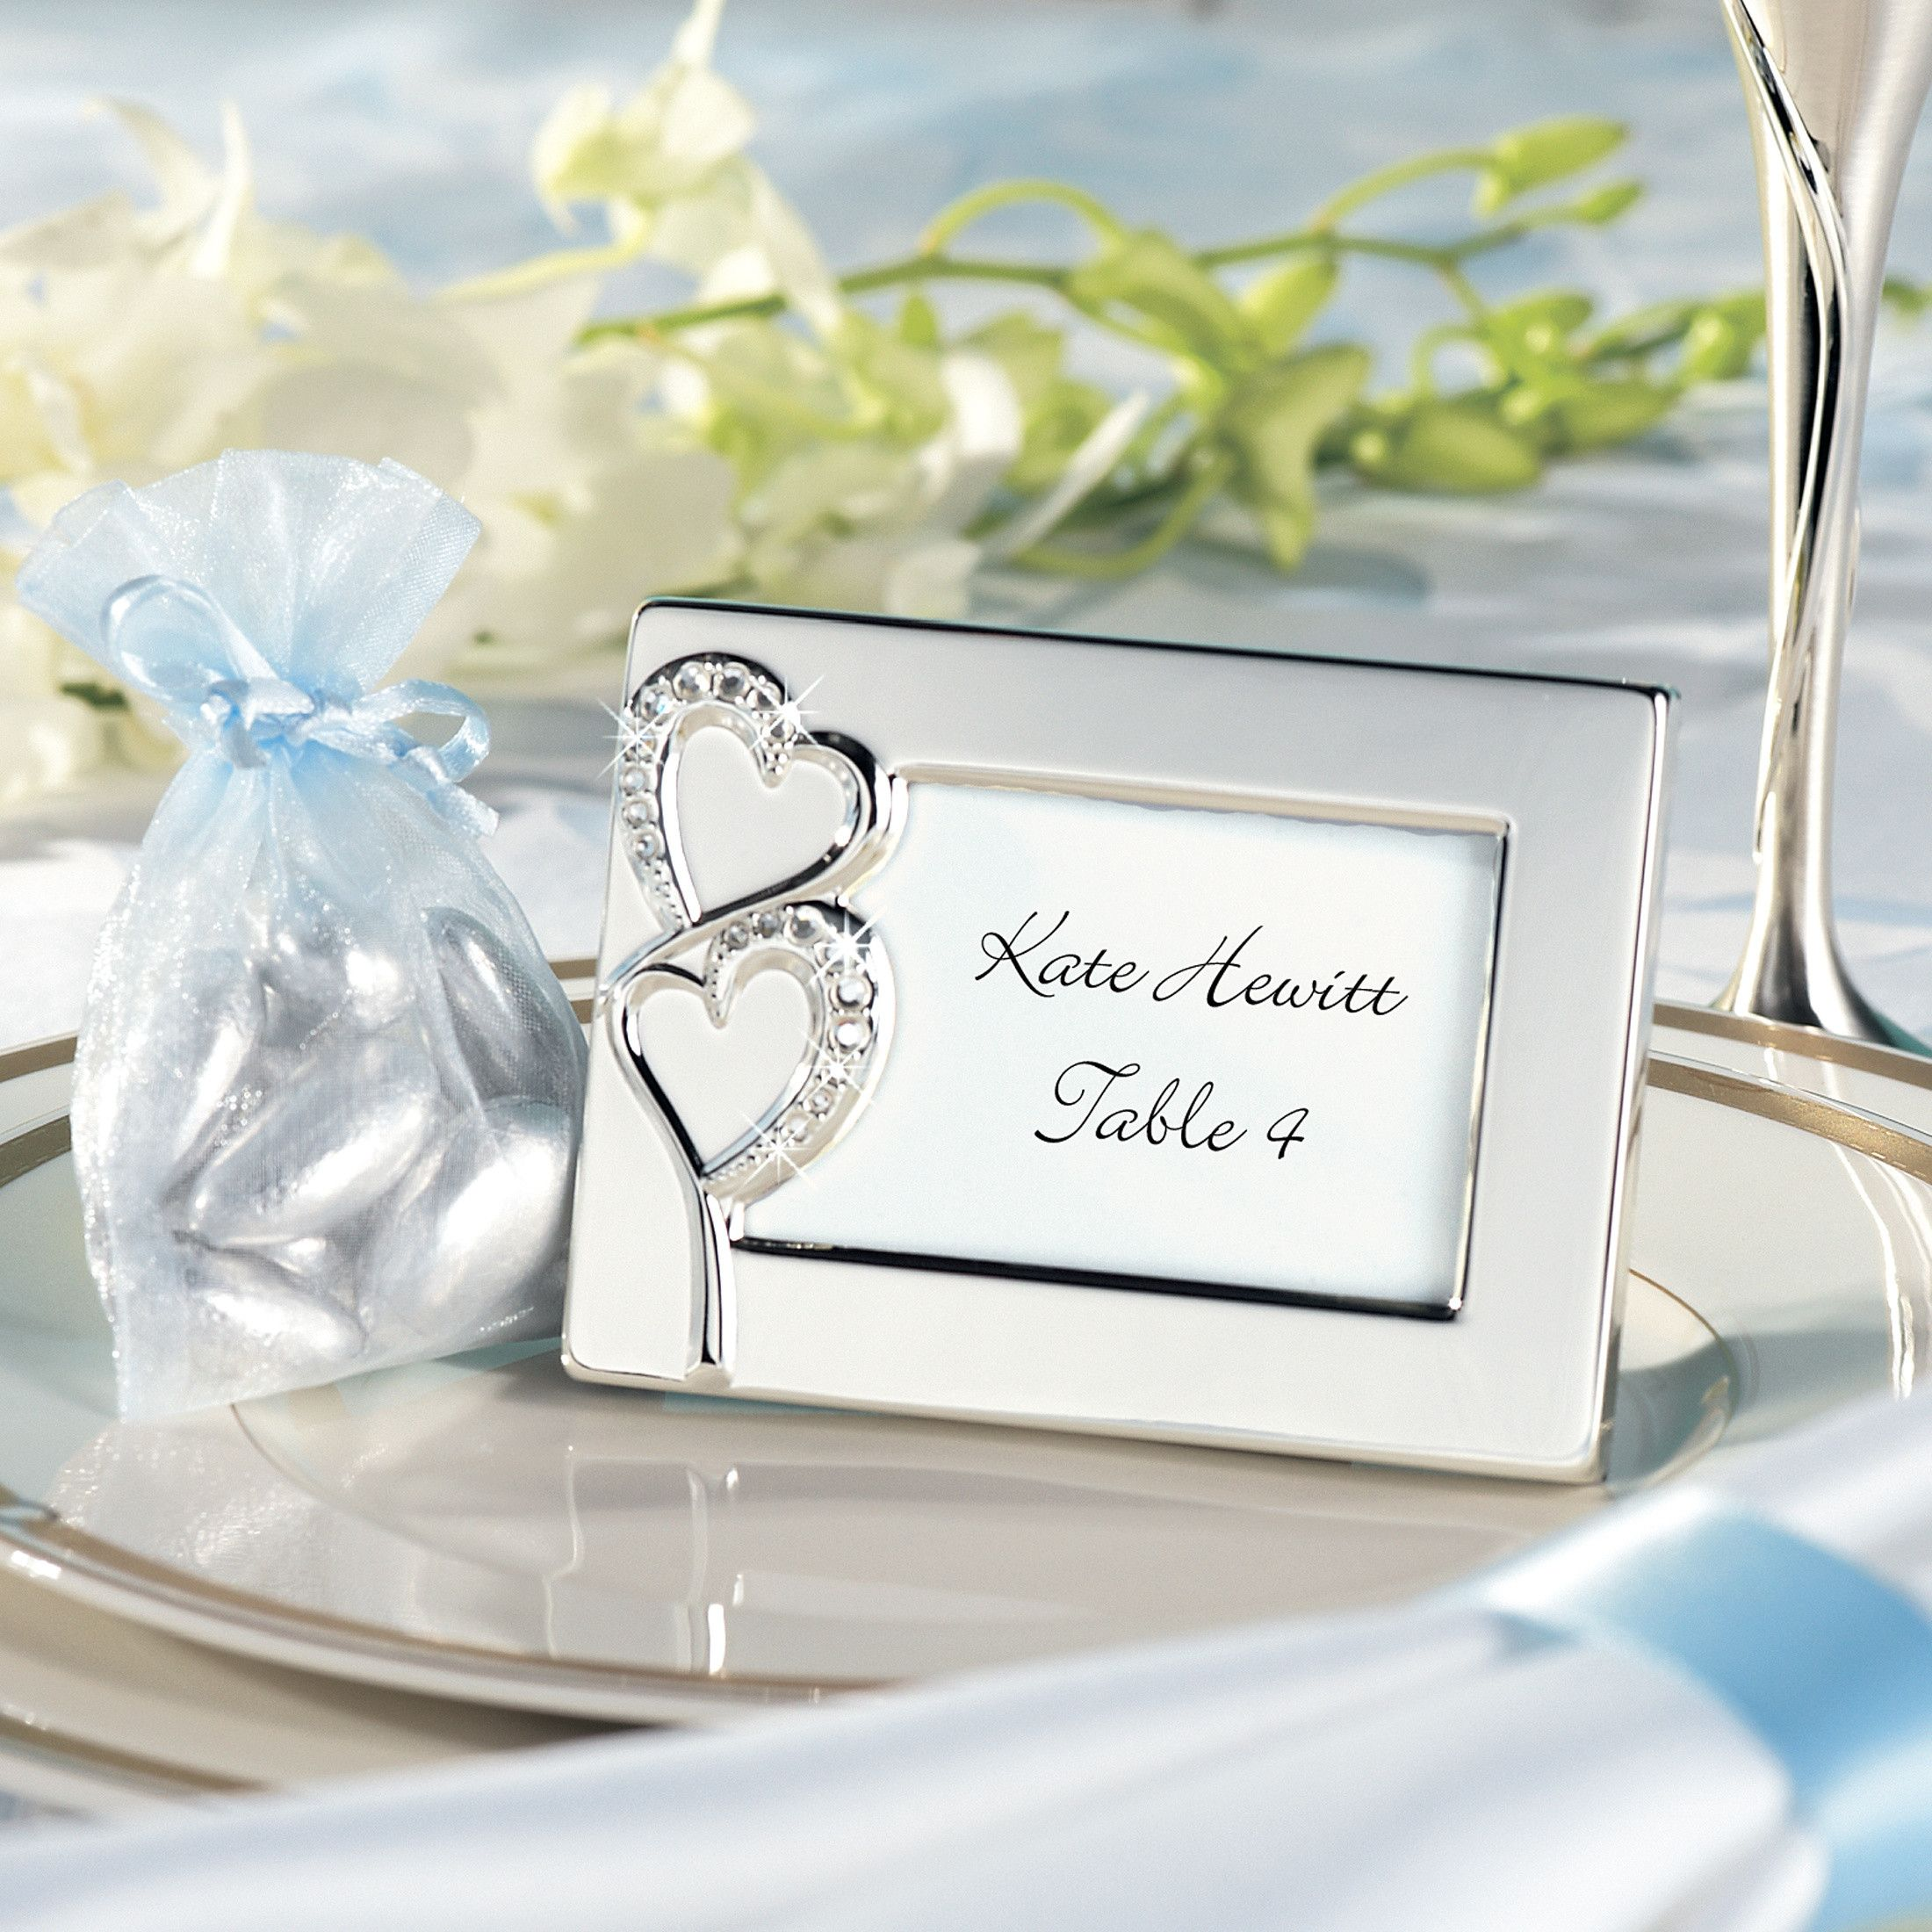 Twin Hearts Favor Frame and Place Card Holder with Place Card ...